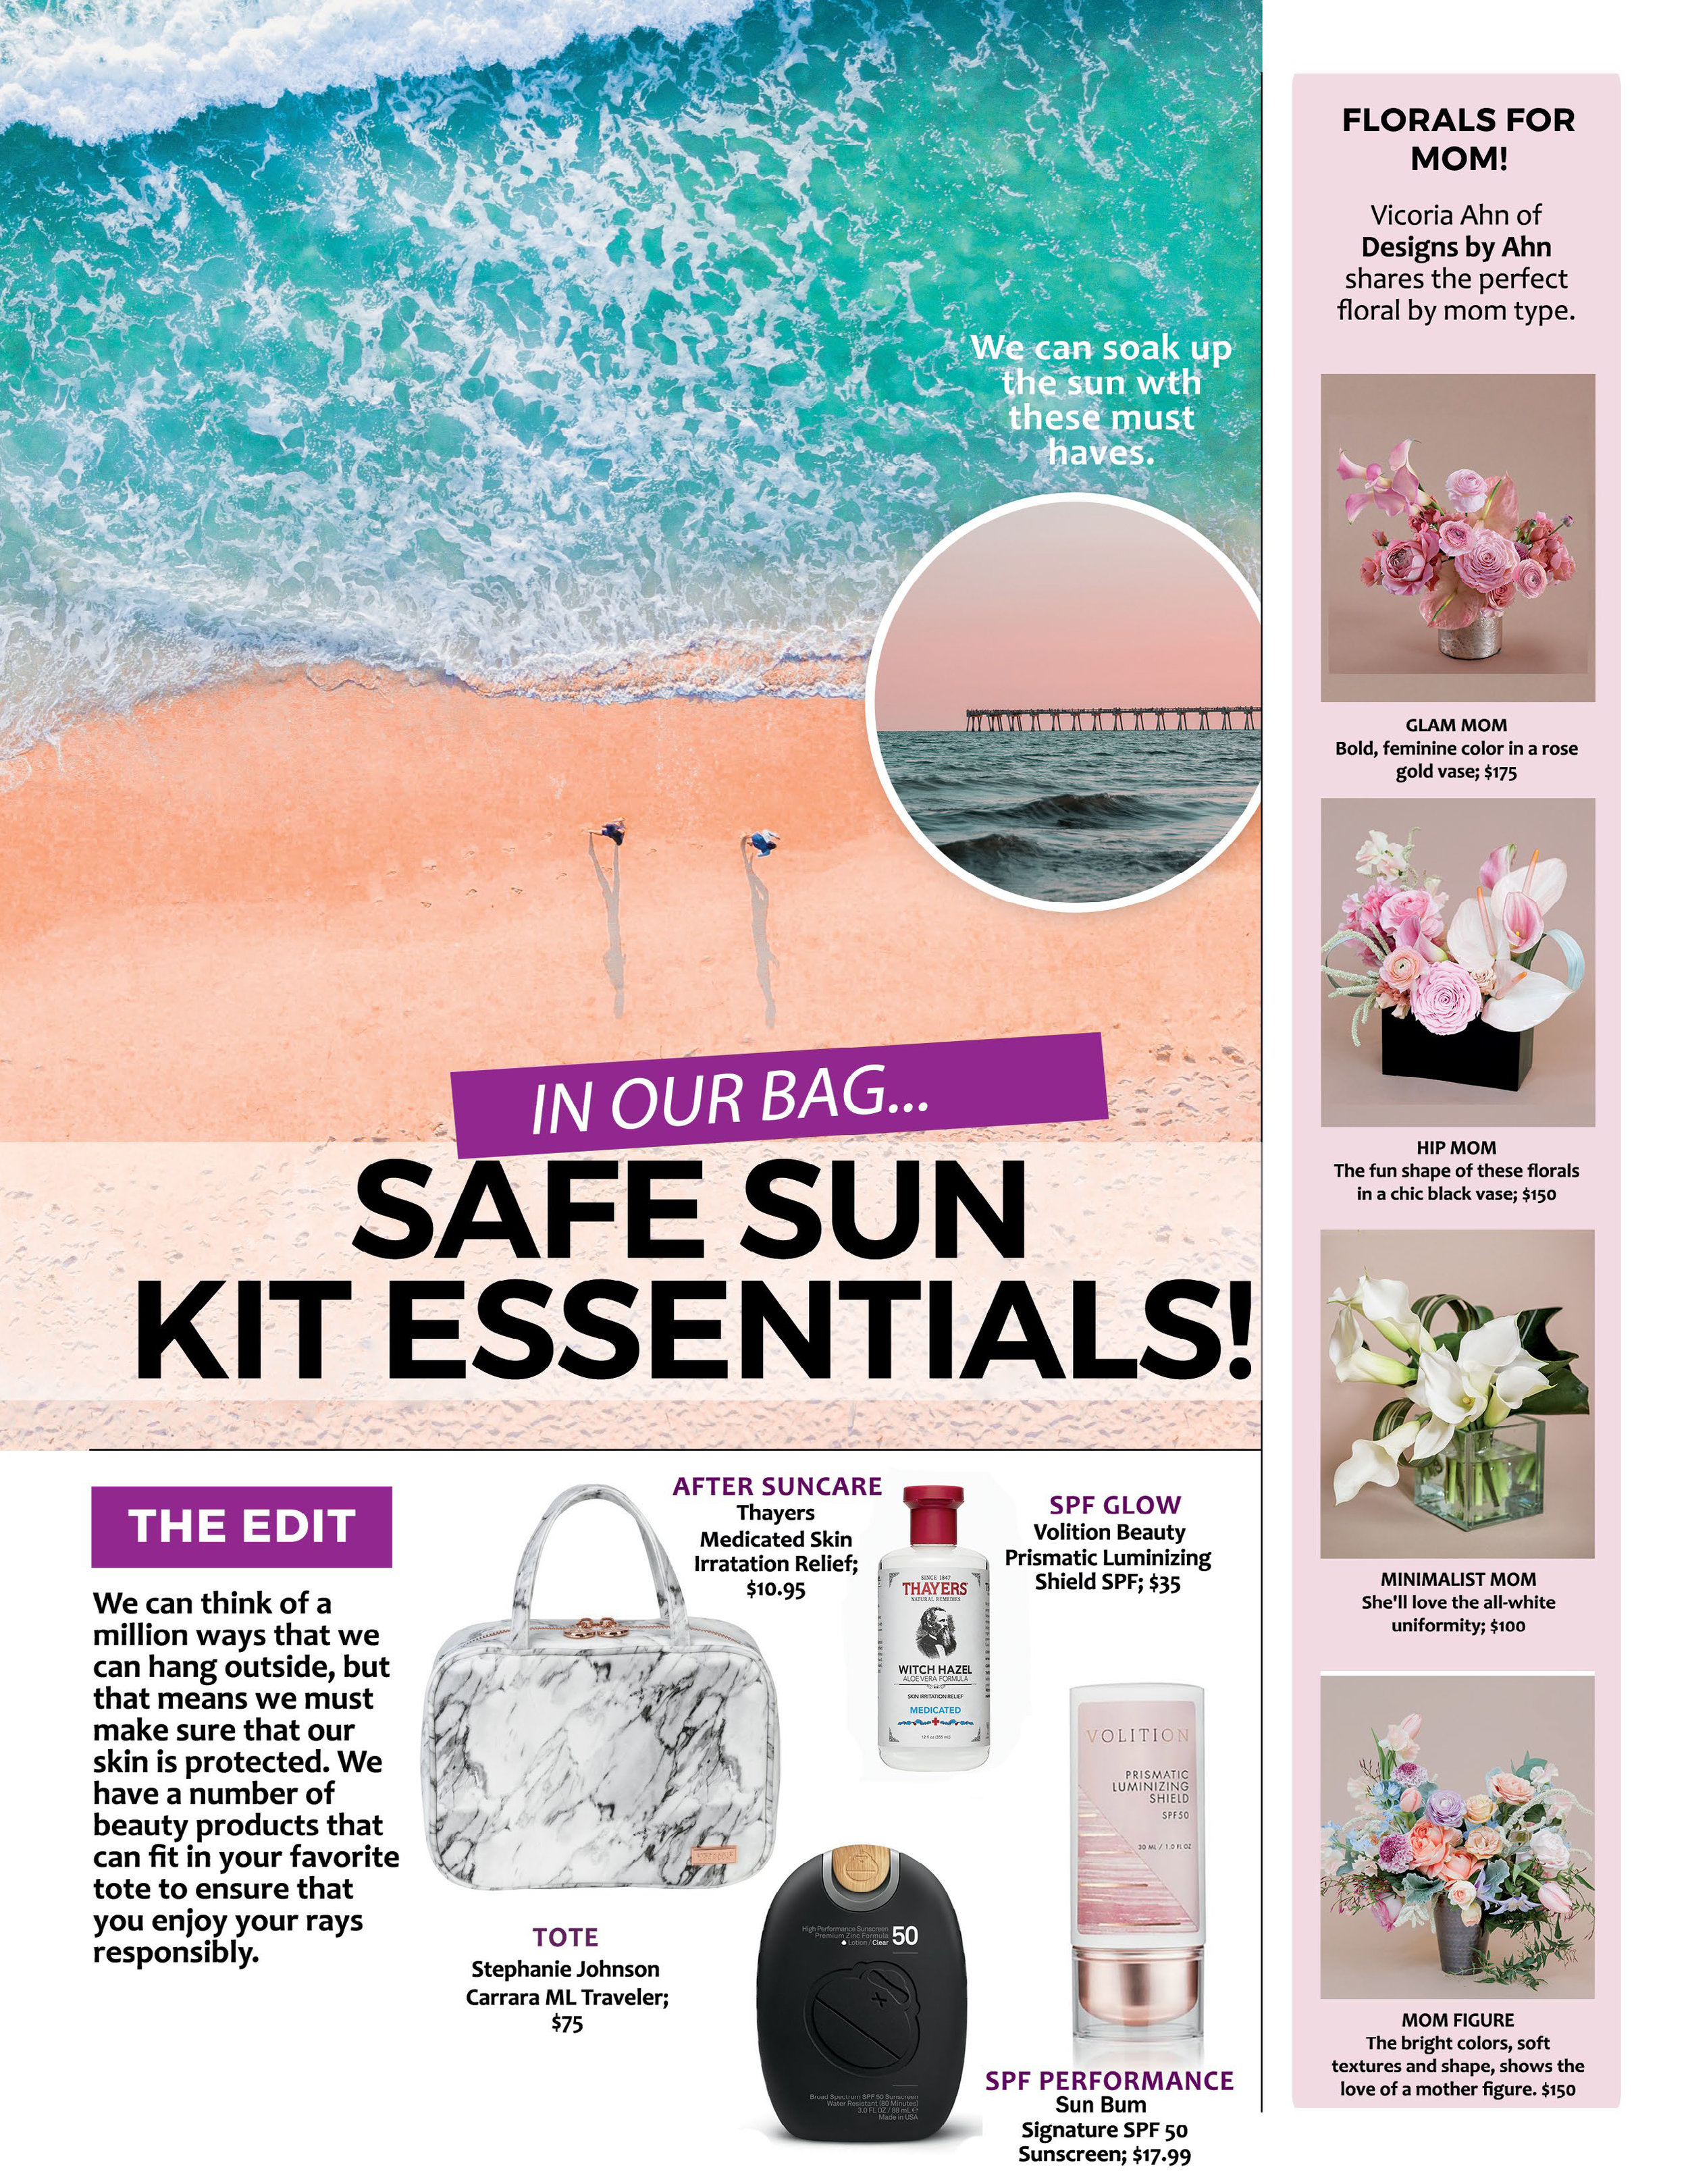 AM APR SAFE SUN KIT ESSENTIALS.jpg